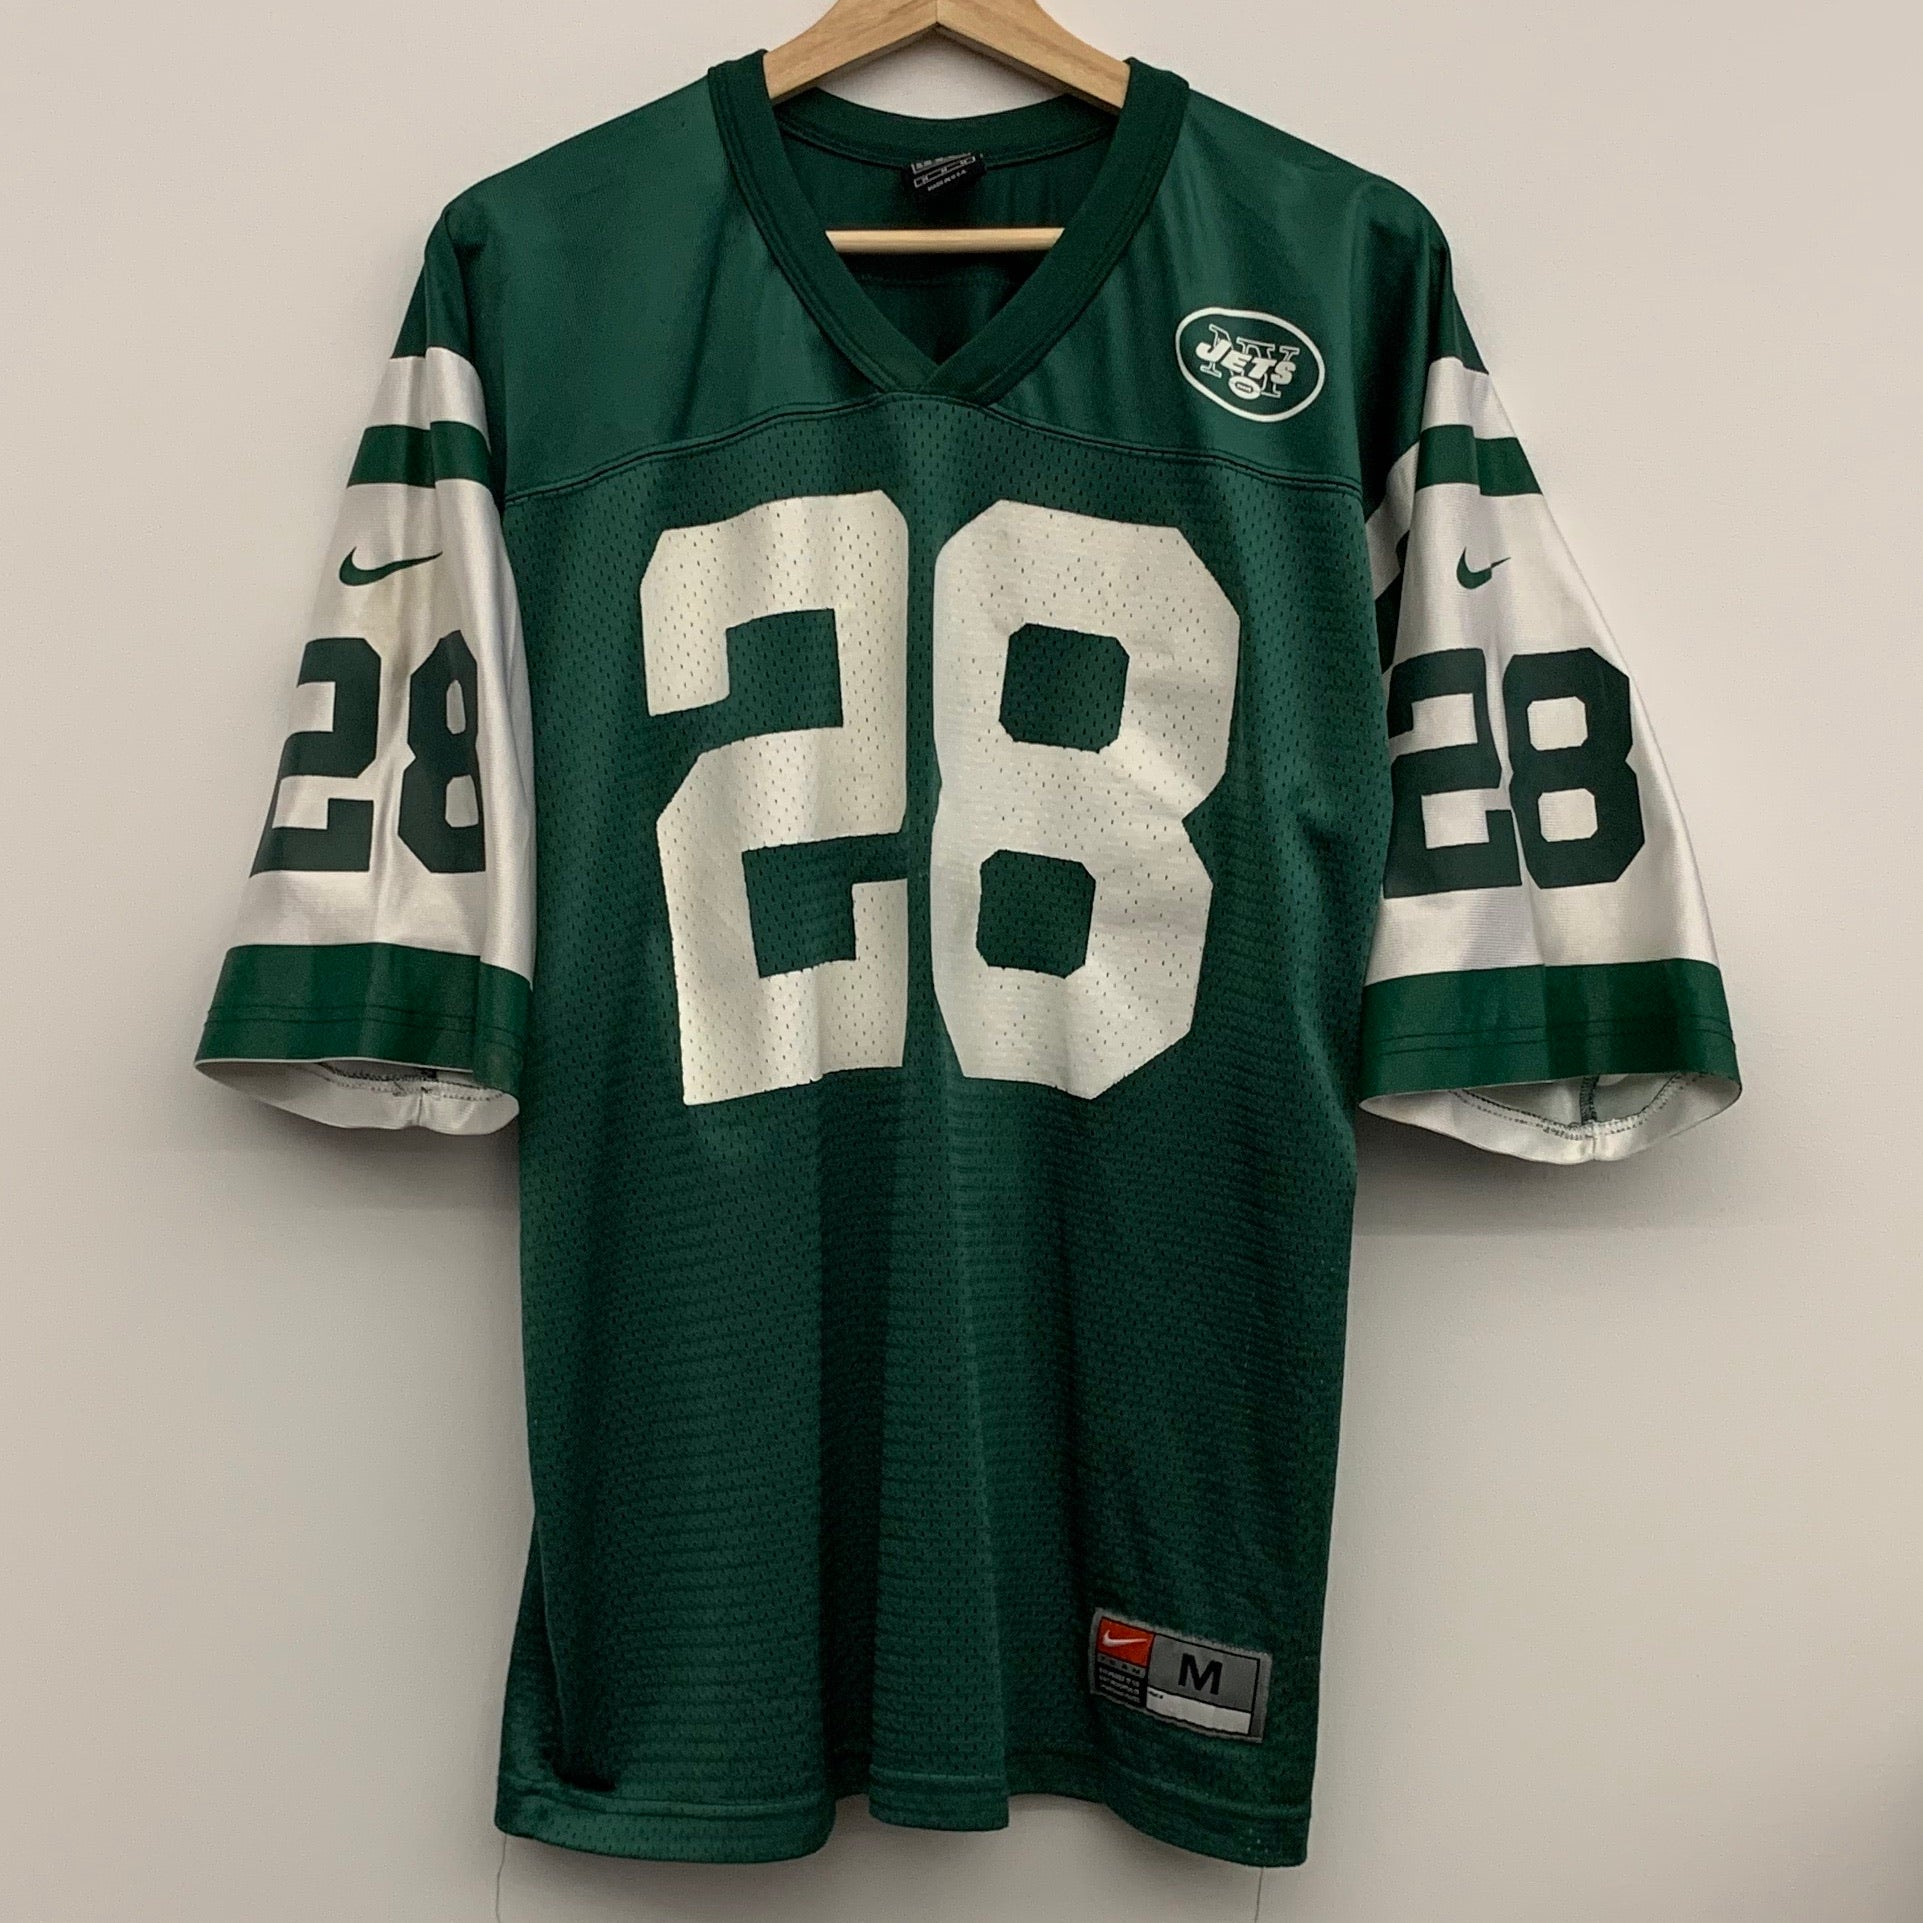 Nike Curtis Martin New York Jets Green Football Jersey